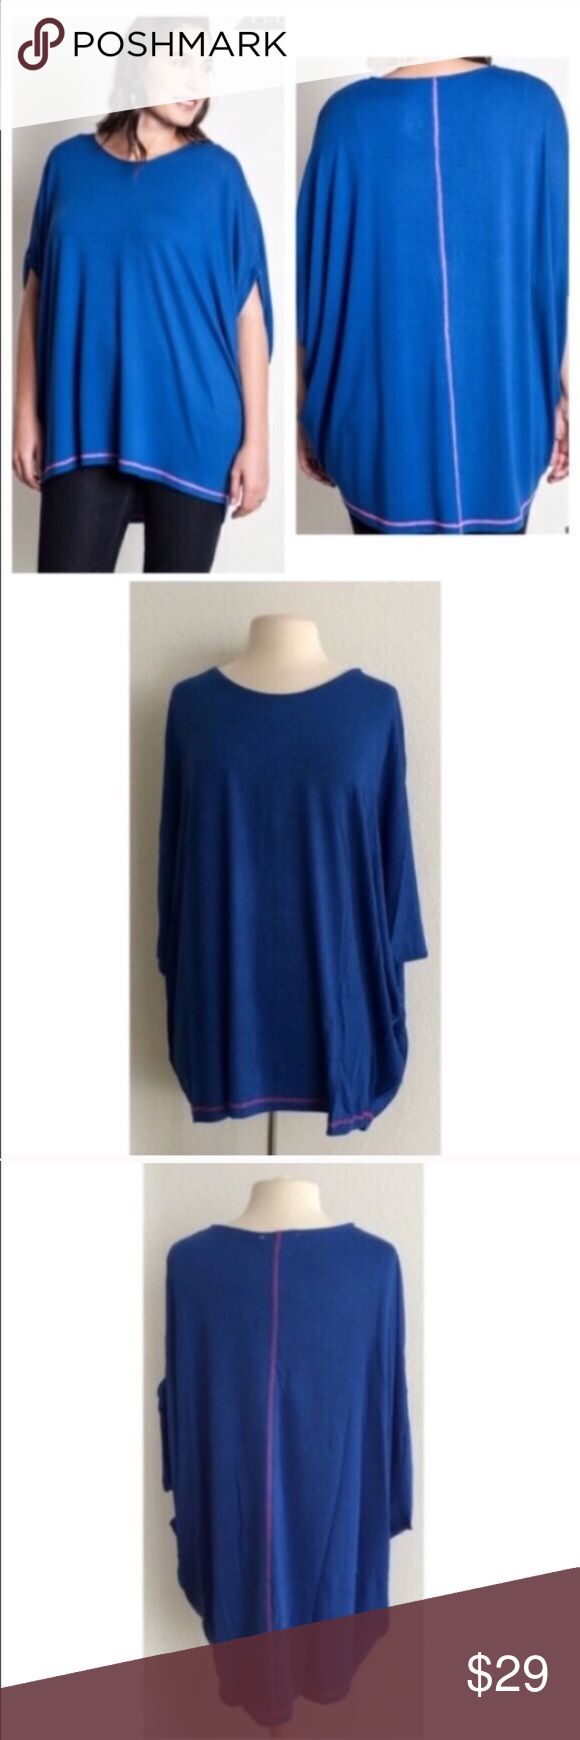 "(Plus) Blue batwing top Blue batwing top  Length- approx 32""  Materials- 65% cotton/ 35% polyester. This is a pretty thick top and it is extremely versatile. It can be dressed up or dressed down. Runs slightly large.  Availability- XL•1x • 1•1 ⭐️This item is brand new from manufacturer without tags.  🚫NO TRADES 💲Price is firm unless bundled 💰Ask about bundle discounts Tops Tunics"